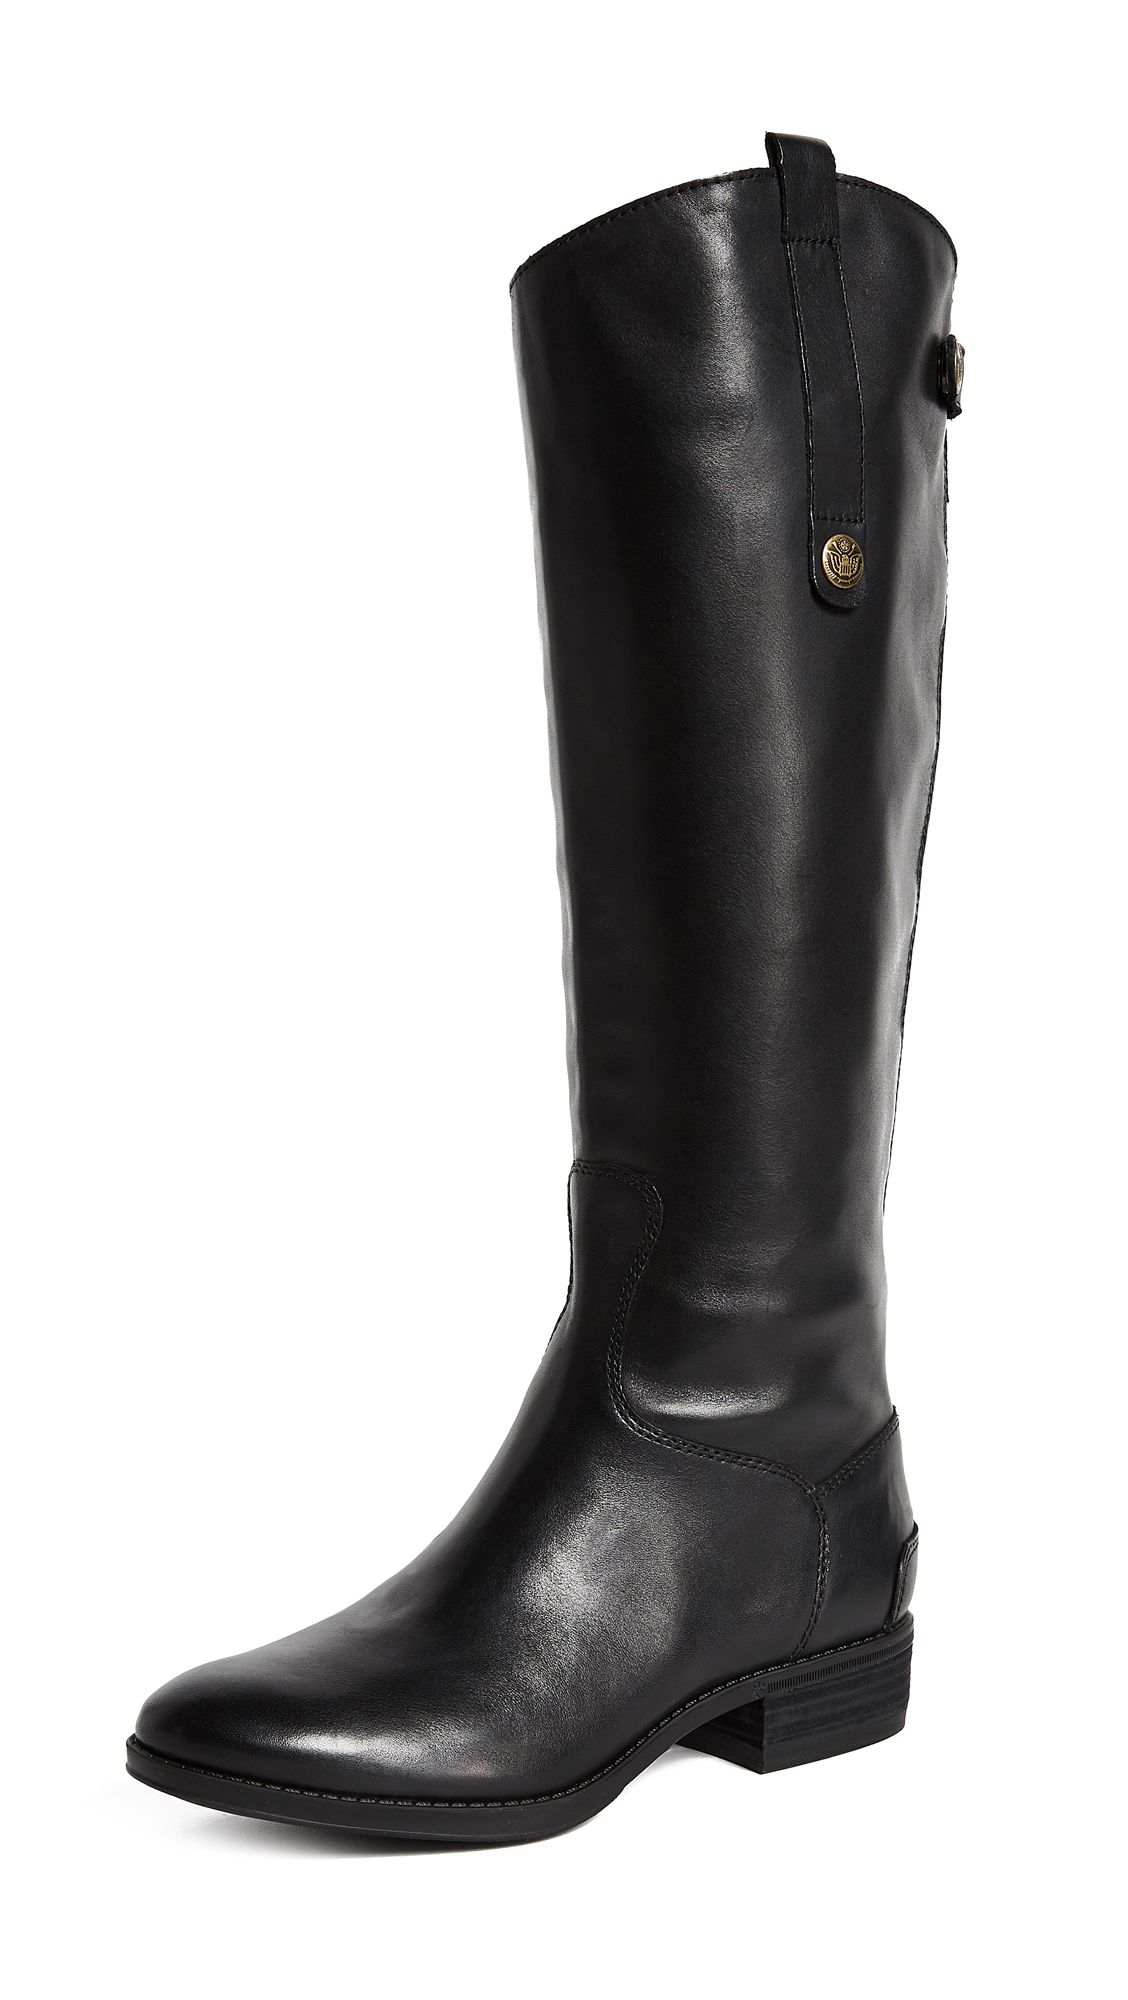 Sam Edelman Penny Riding Boots - Black